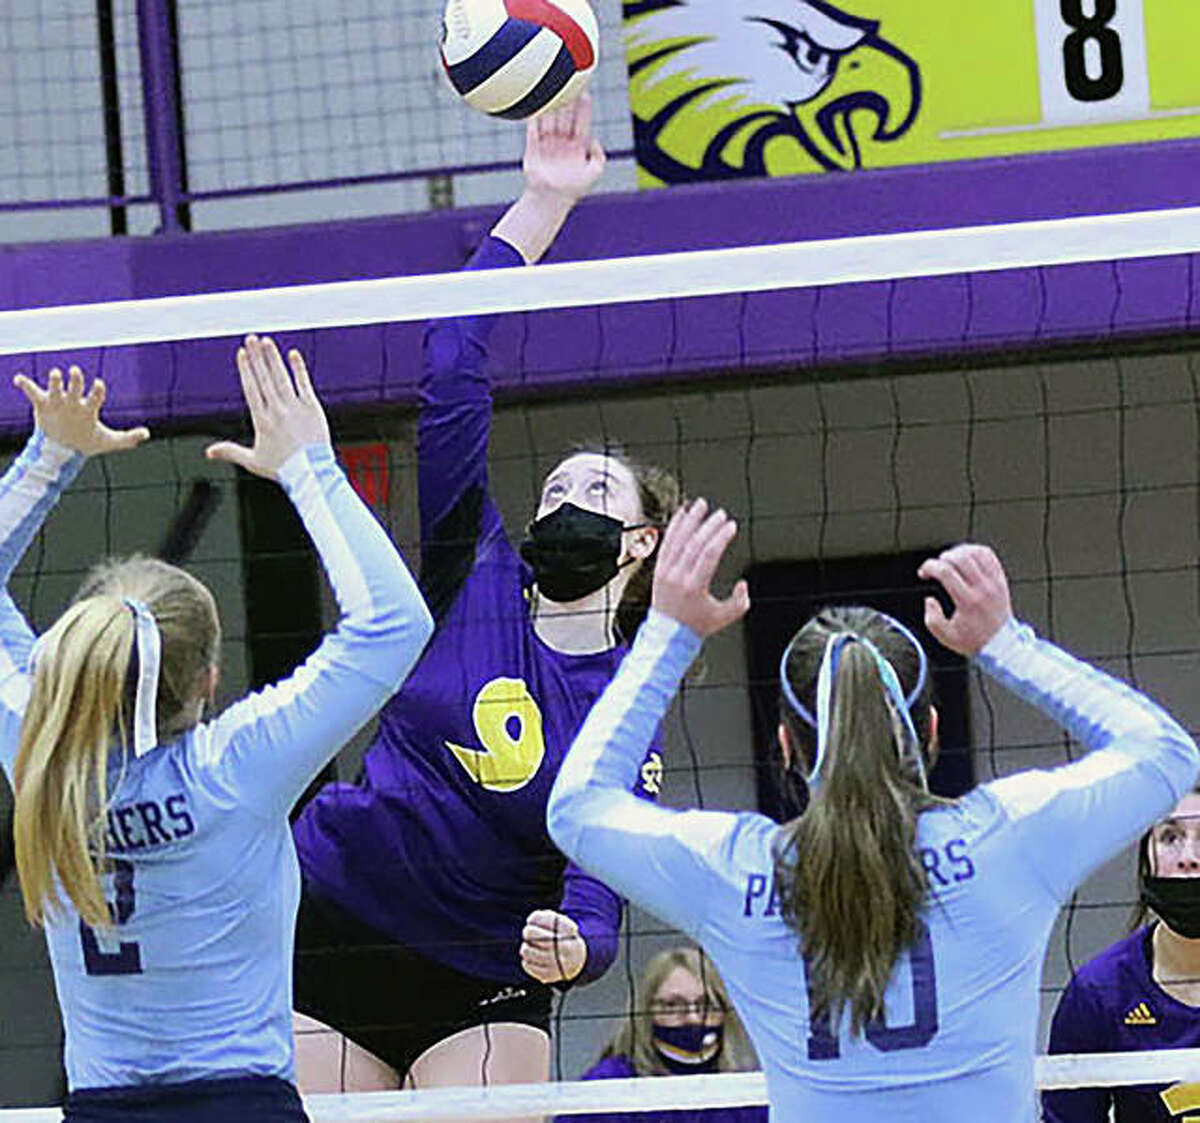 CM's Lauren Dunlap (9) attacks before Jersey's Sally Hudson and Caroline Gibson (10) can put up a block in a March 18 volleyball match in Bethalto. Volleyball teams, as well as athletes playing other indoor fall sports, will be required to wear masks temporarily, according to the IHSA.